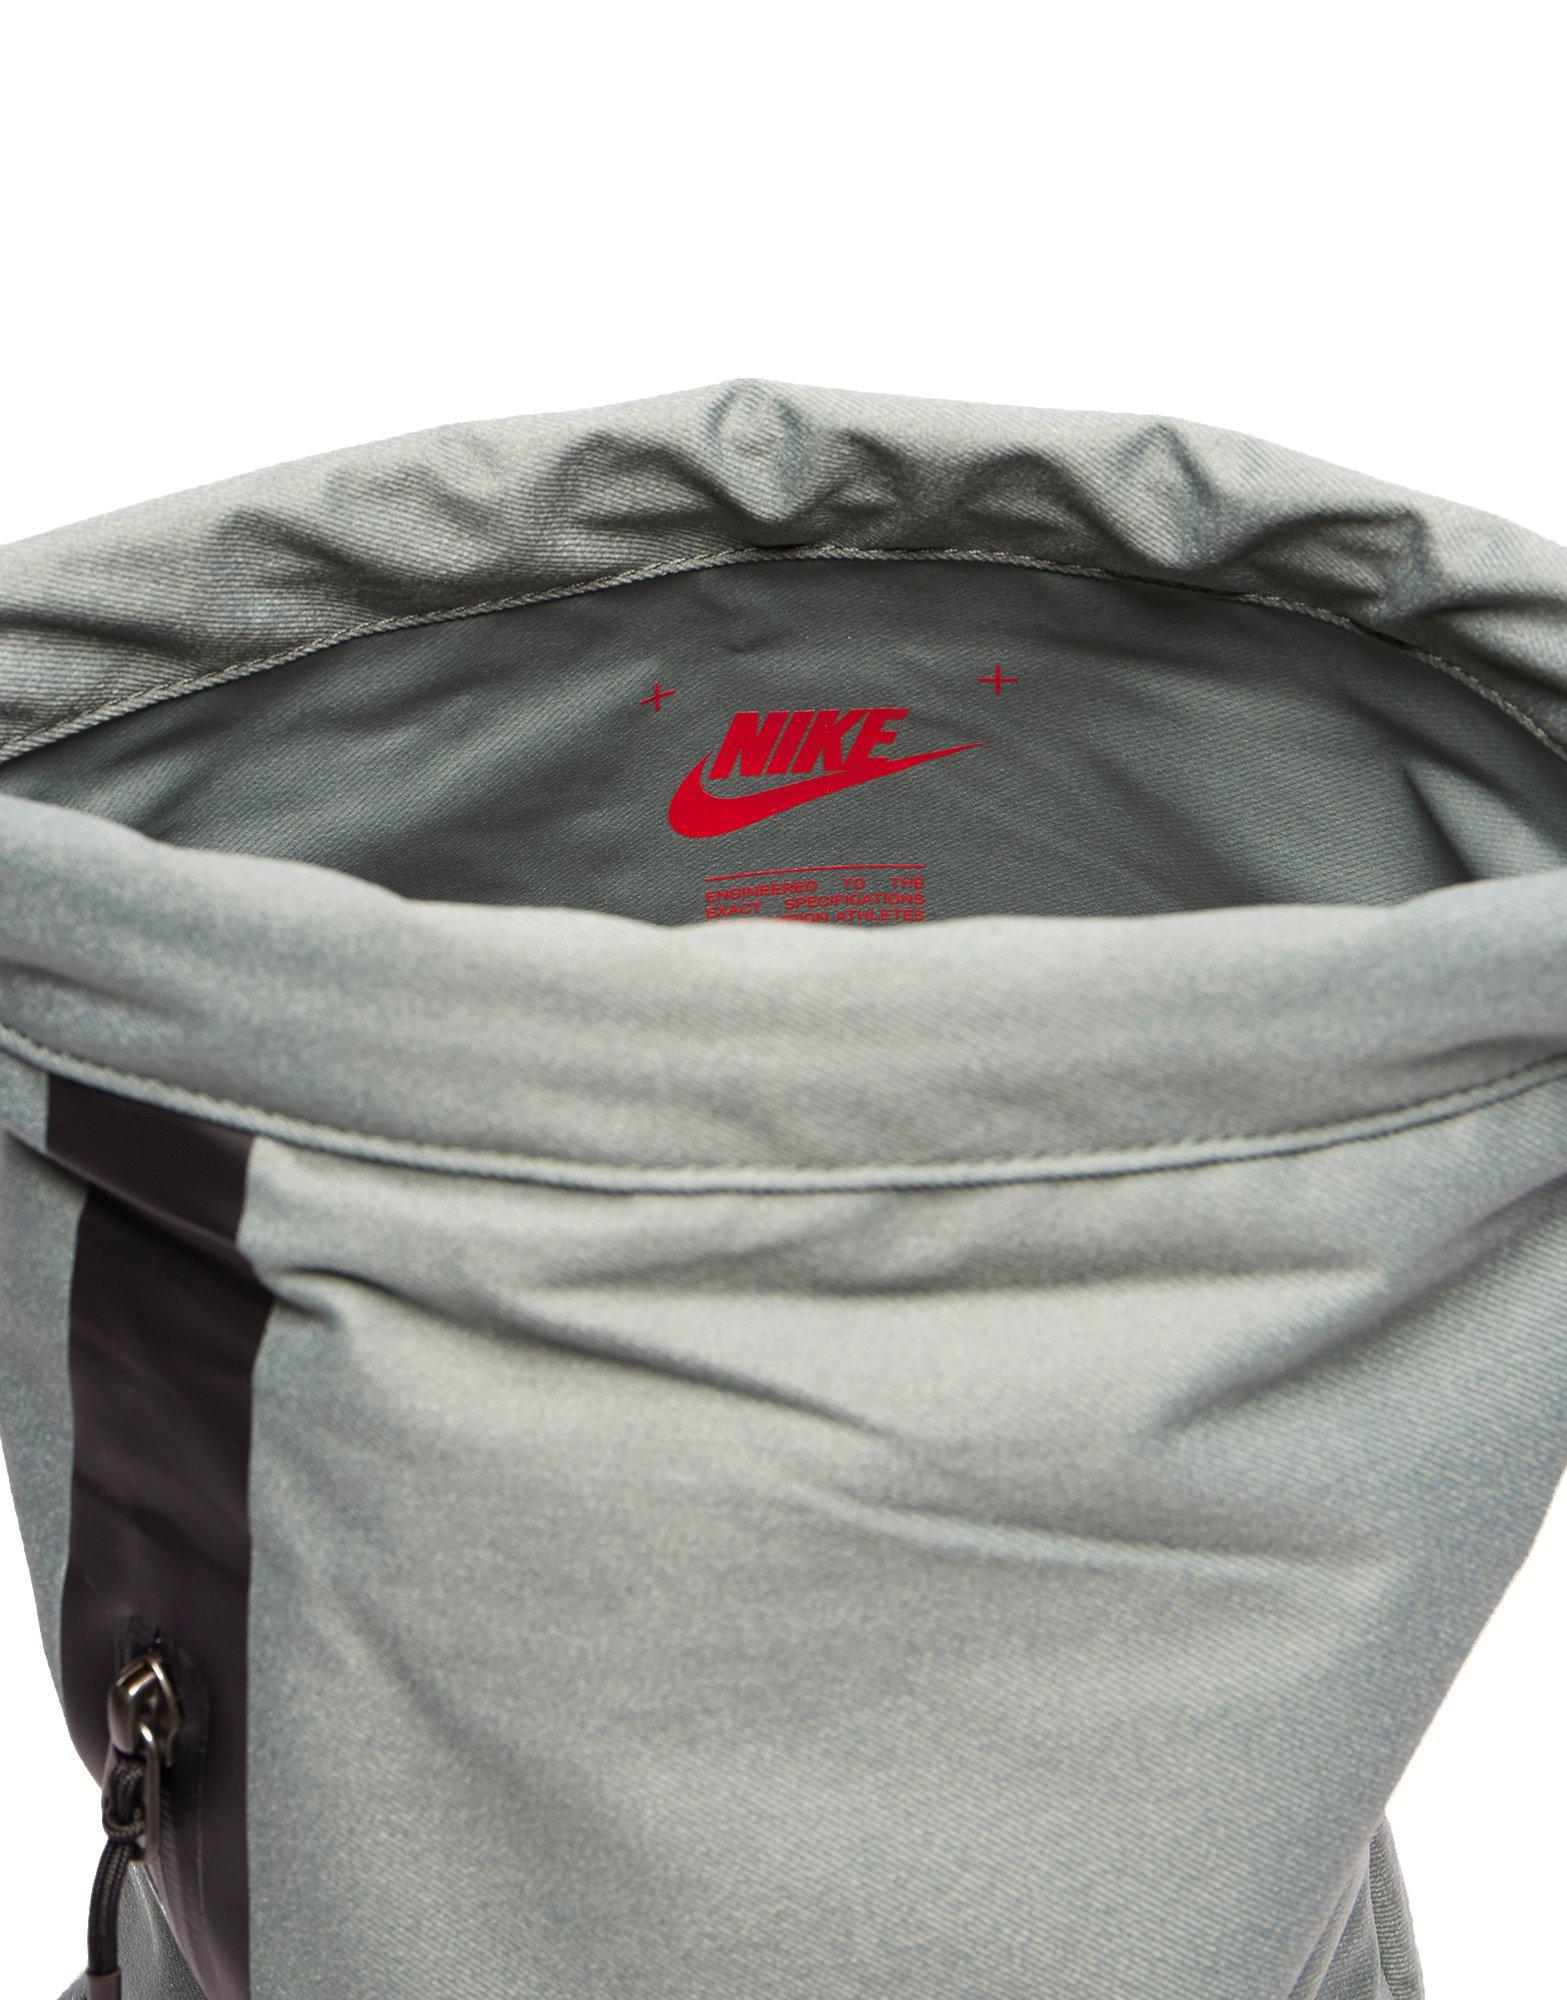 c816c3fdd7 Nike Tech Gymsack in Gray - Lyst